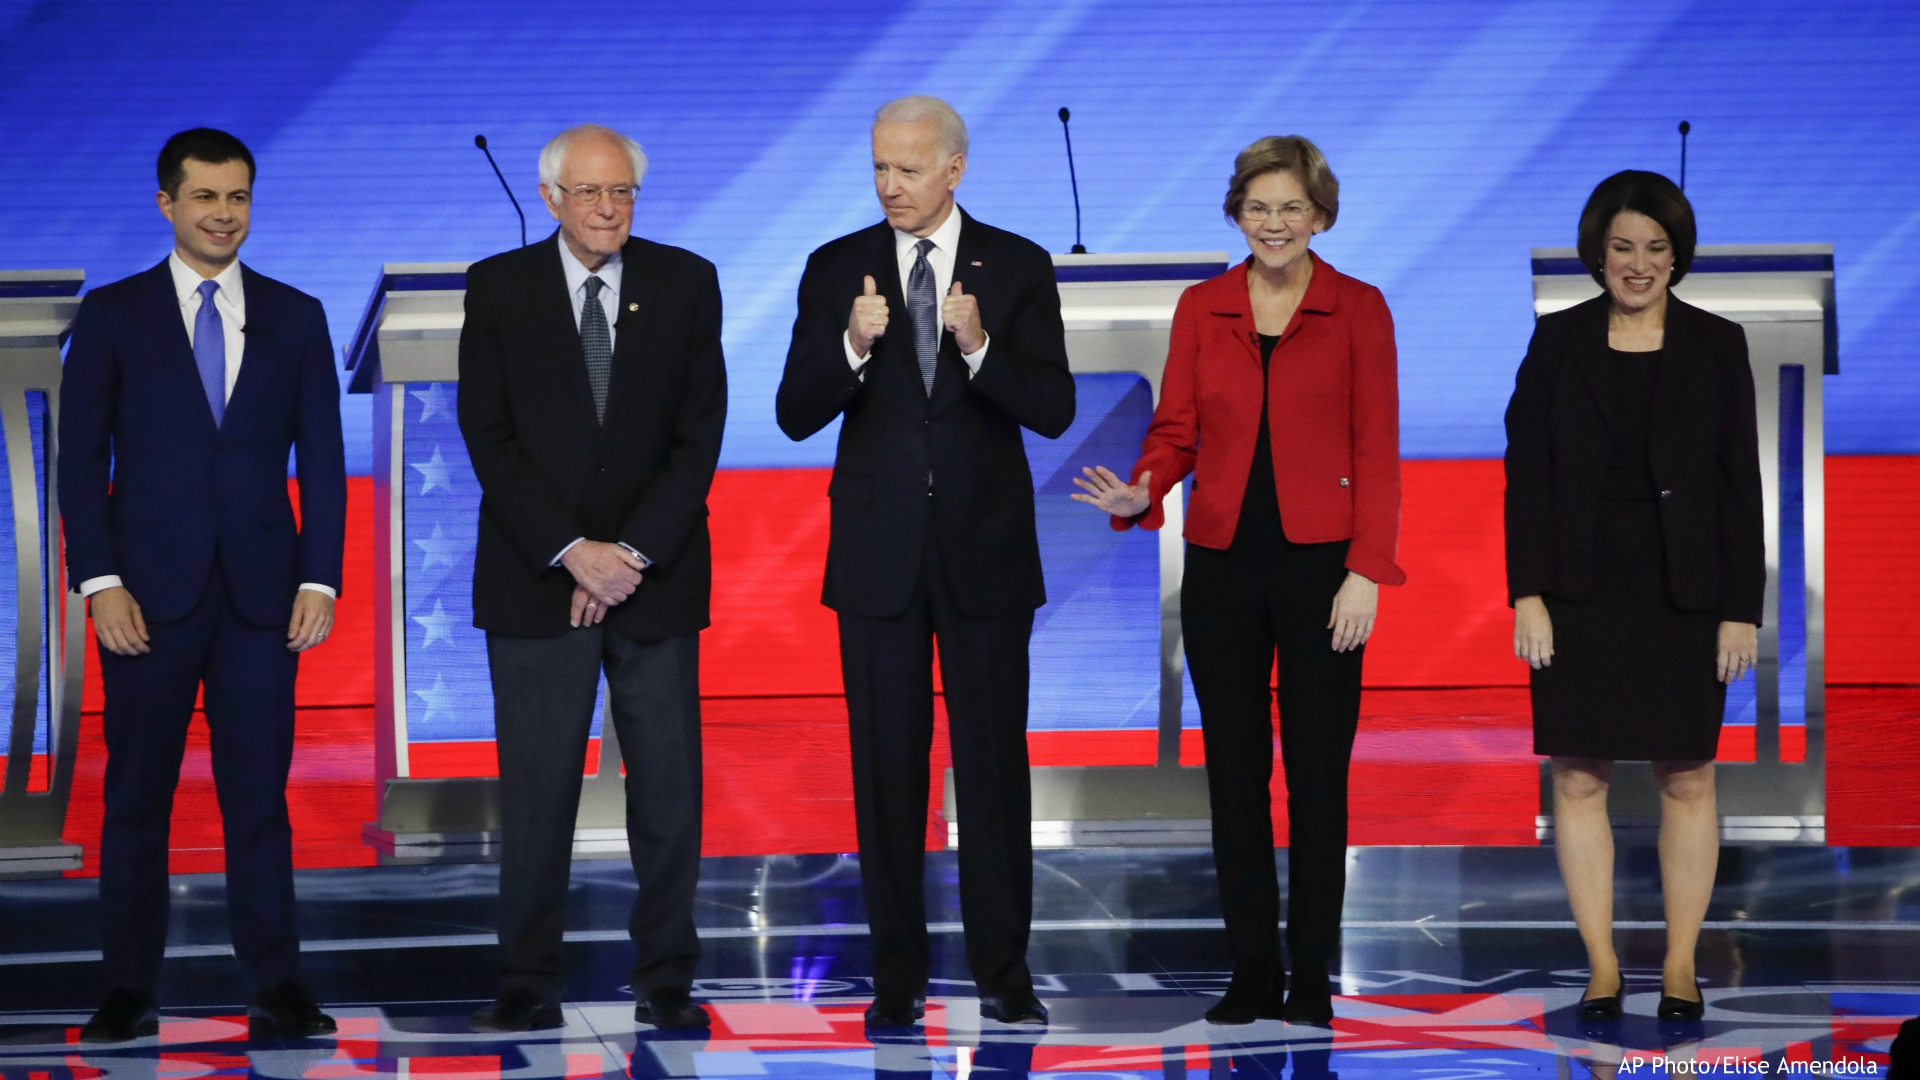 From left, Democratic presidential candidates former South Bend Mayor Pete Buttigieg, Sen. Bernie Sanders, I-Vt., former Vice President Joe Biden, Sen. Elizabeth Warren, D-Mass., and Sen. Amy Klobuchar, D-Minn., stand on stage Friday, Feb. 7, 2020, before the start of a Democratic presidential primary debate hosted by ABC News, Apple News, and WMUR-TV at Saint Anselm College in Manchester, N.H. (AP Photo/Elise Amendola)